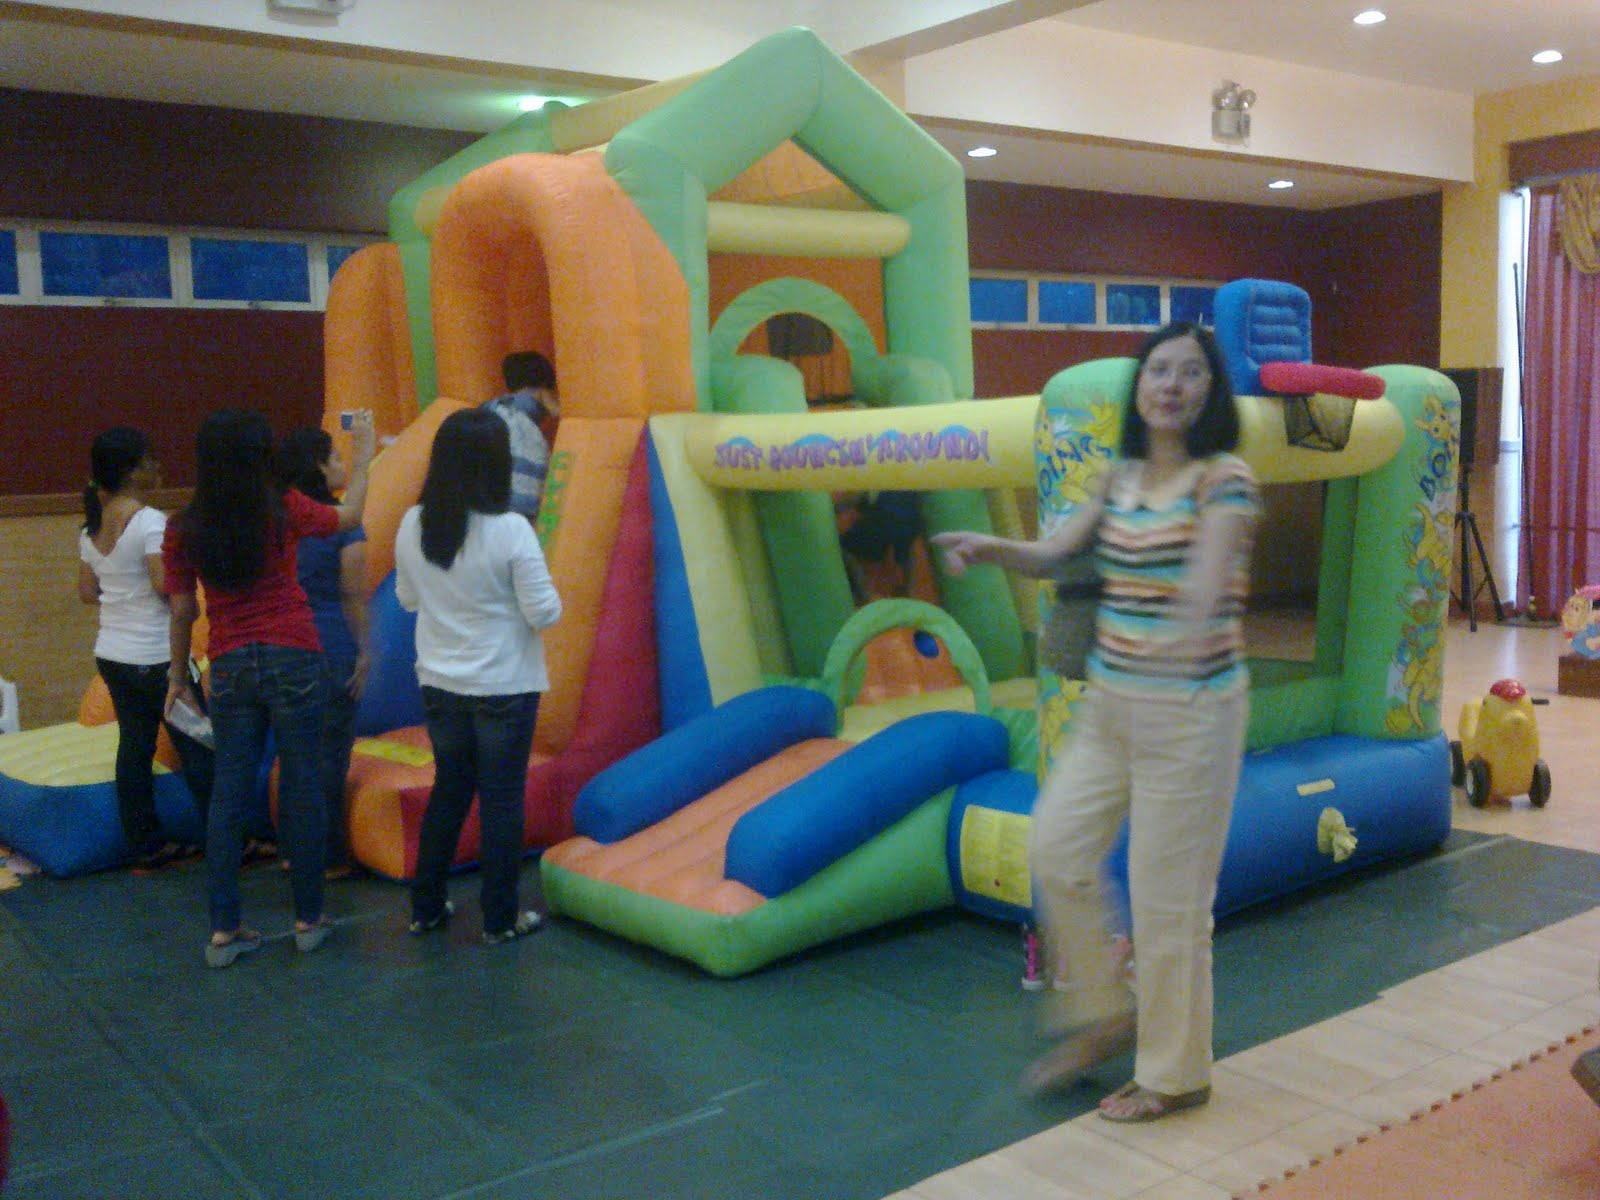 Inflatables Amp Trampoline For Rent May 14 2011